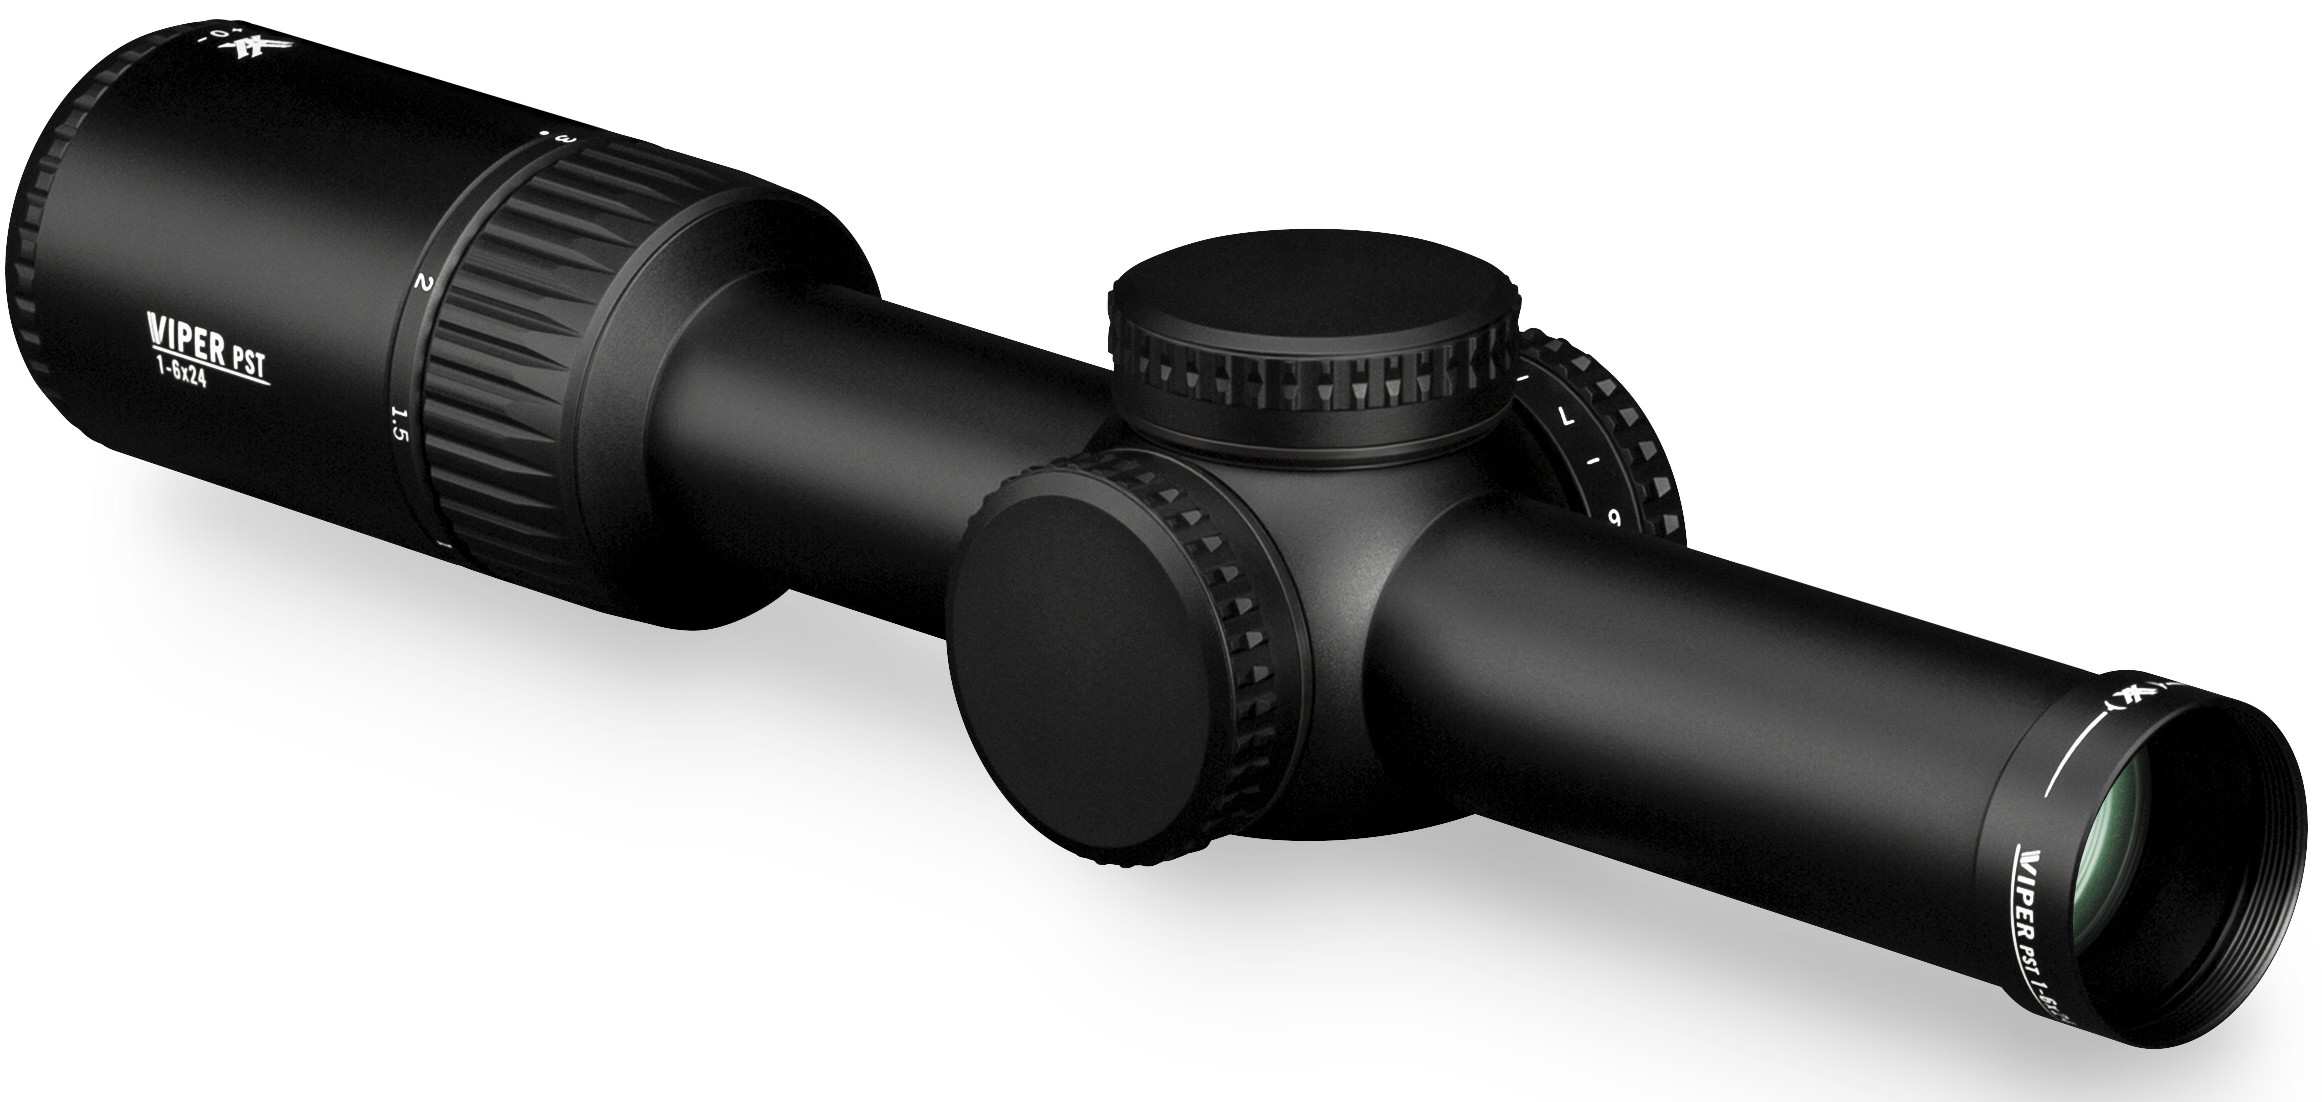 Vortex 1-6x24 Viper PST Gen II 30mm Rifle Scope